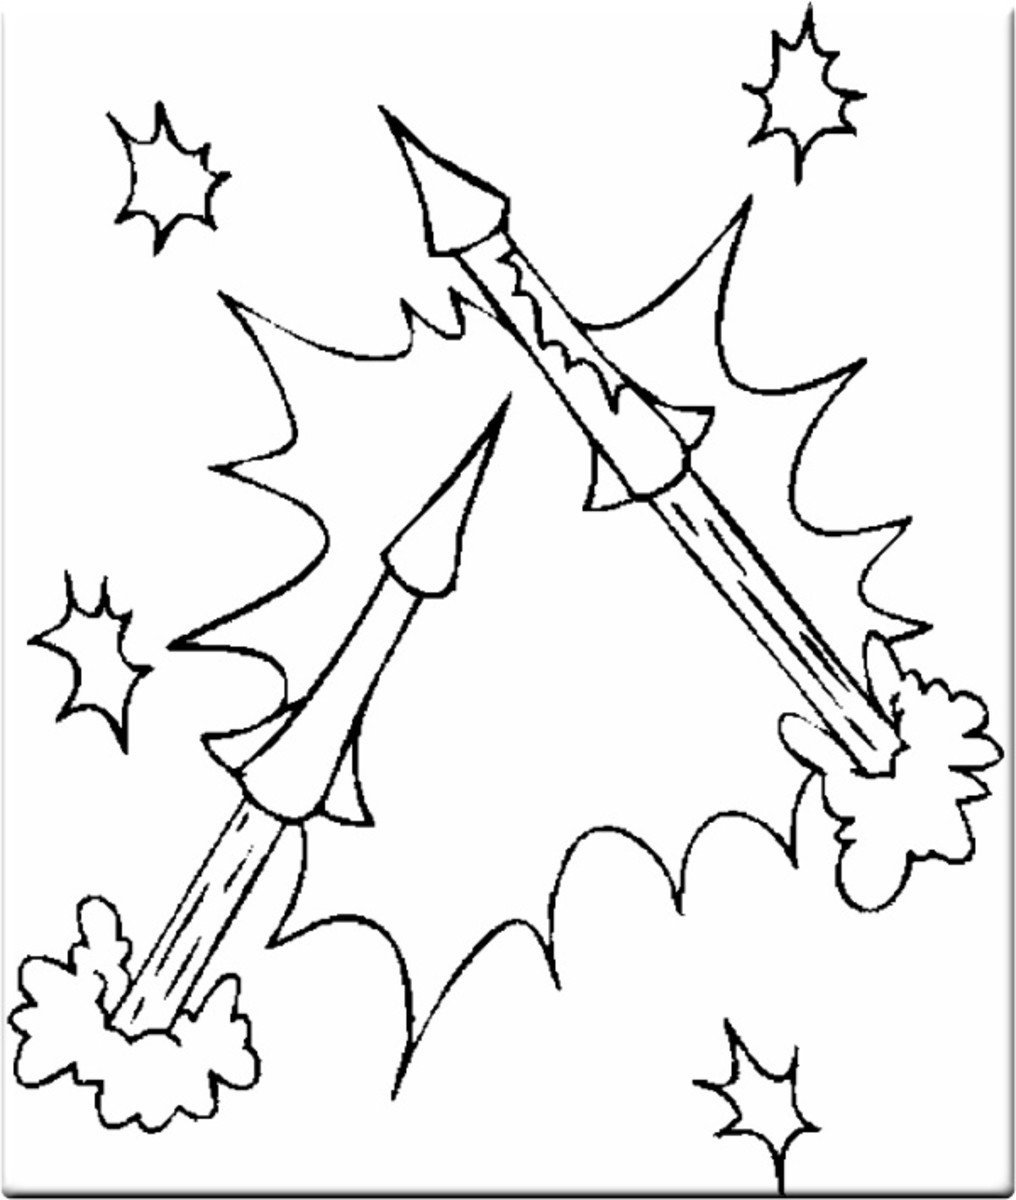 4th-of-July Fireworks Kids Coloring Pages and Colouring Pictures to Print -Ballistics